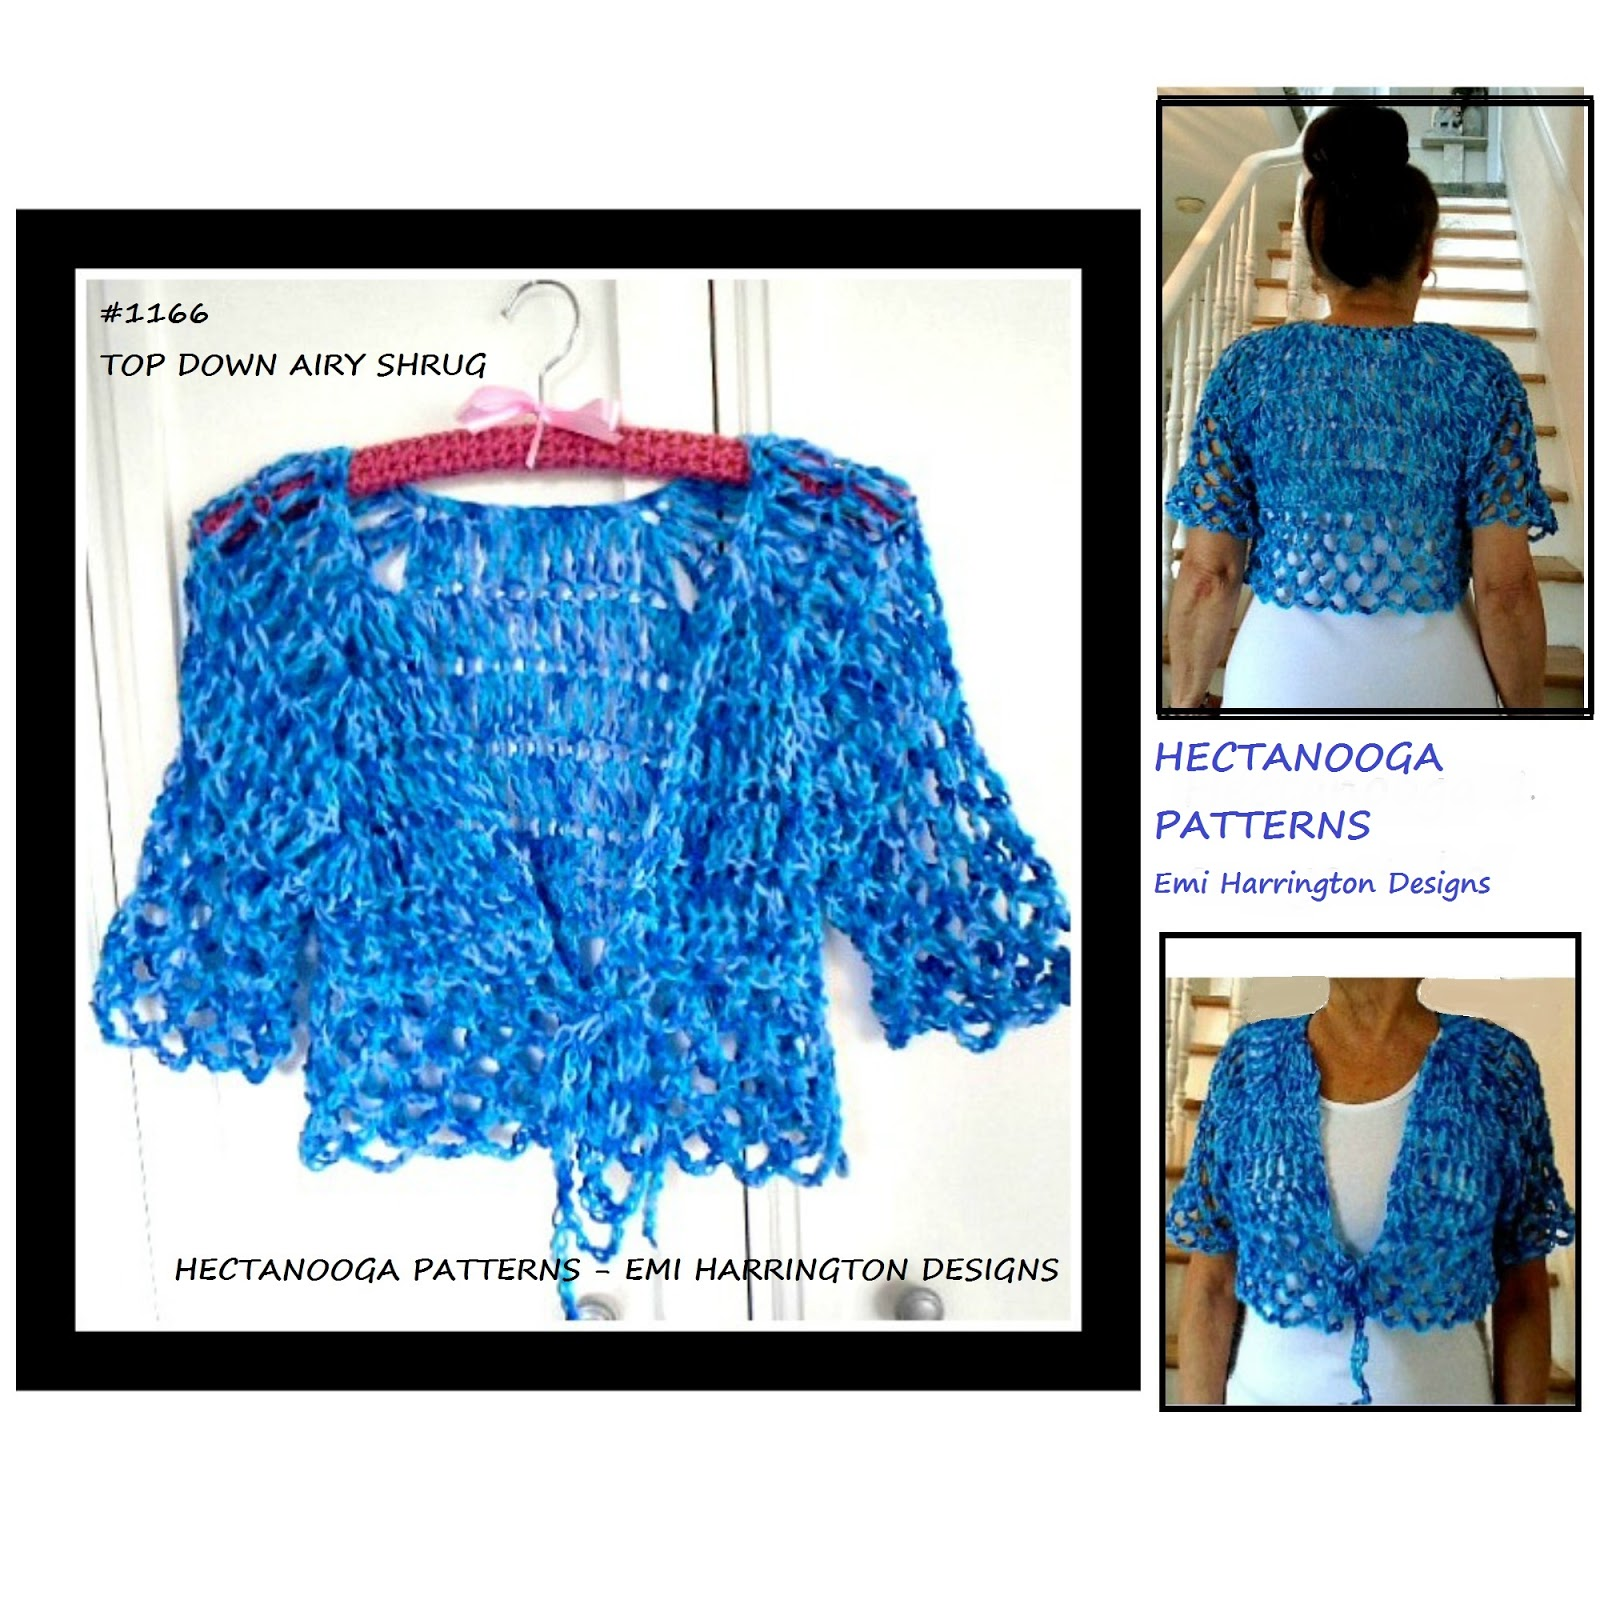 HECTANOOGA PATTERNS: FREE CROCHET PATTERN, Summer Shrug